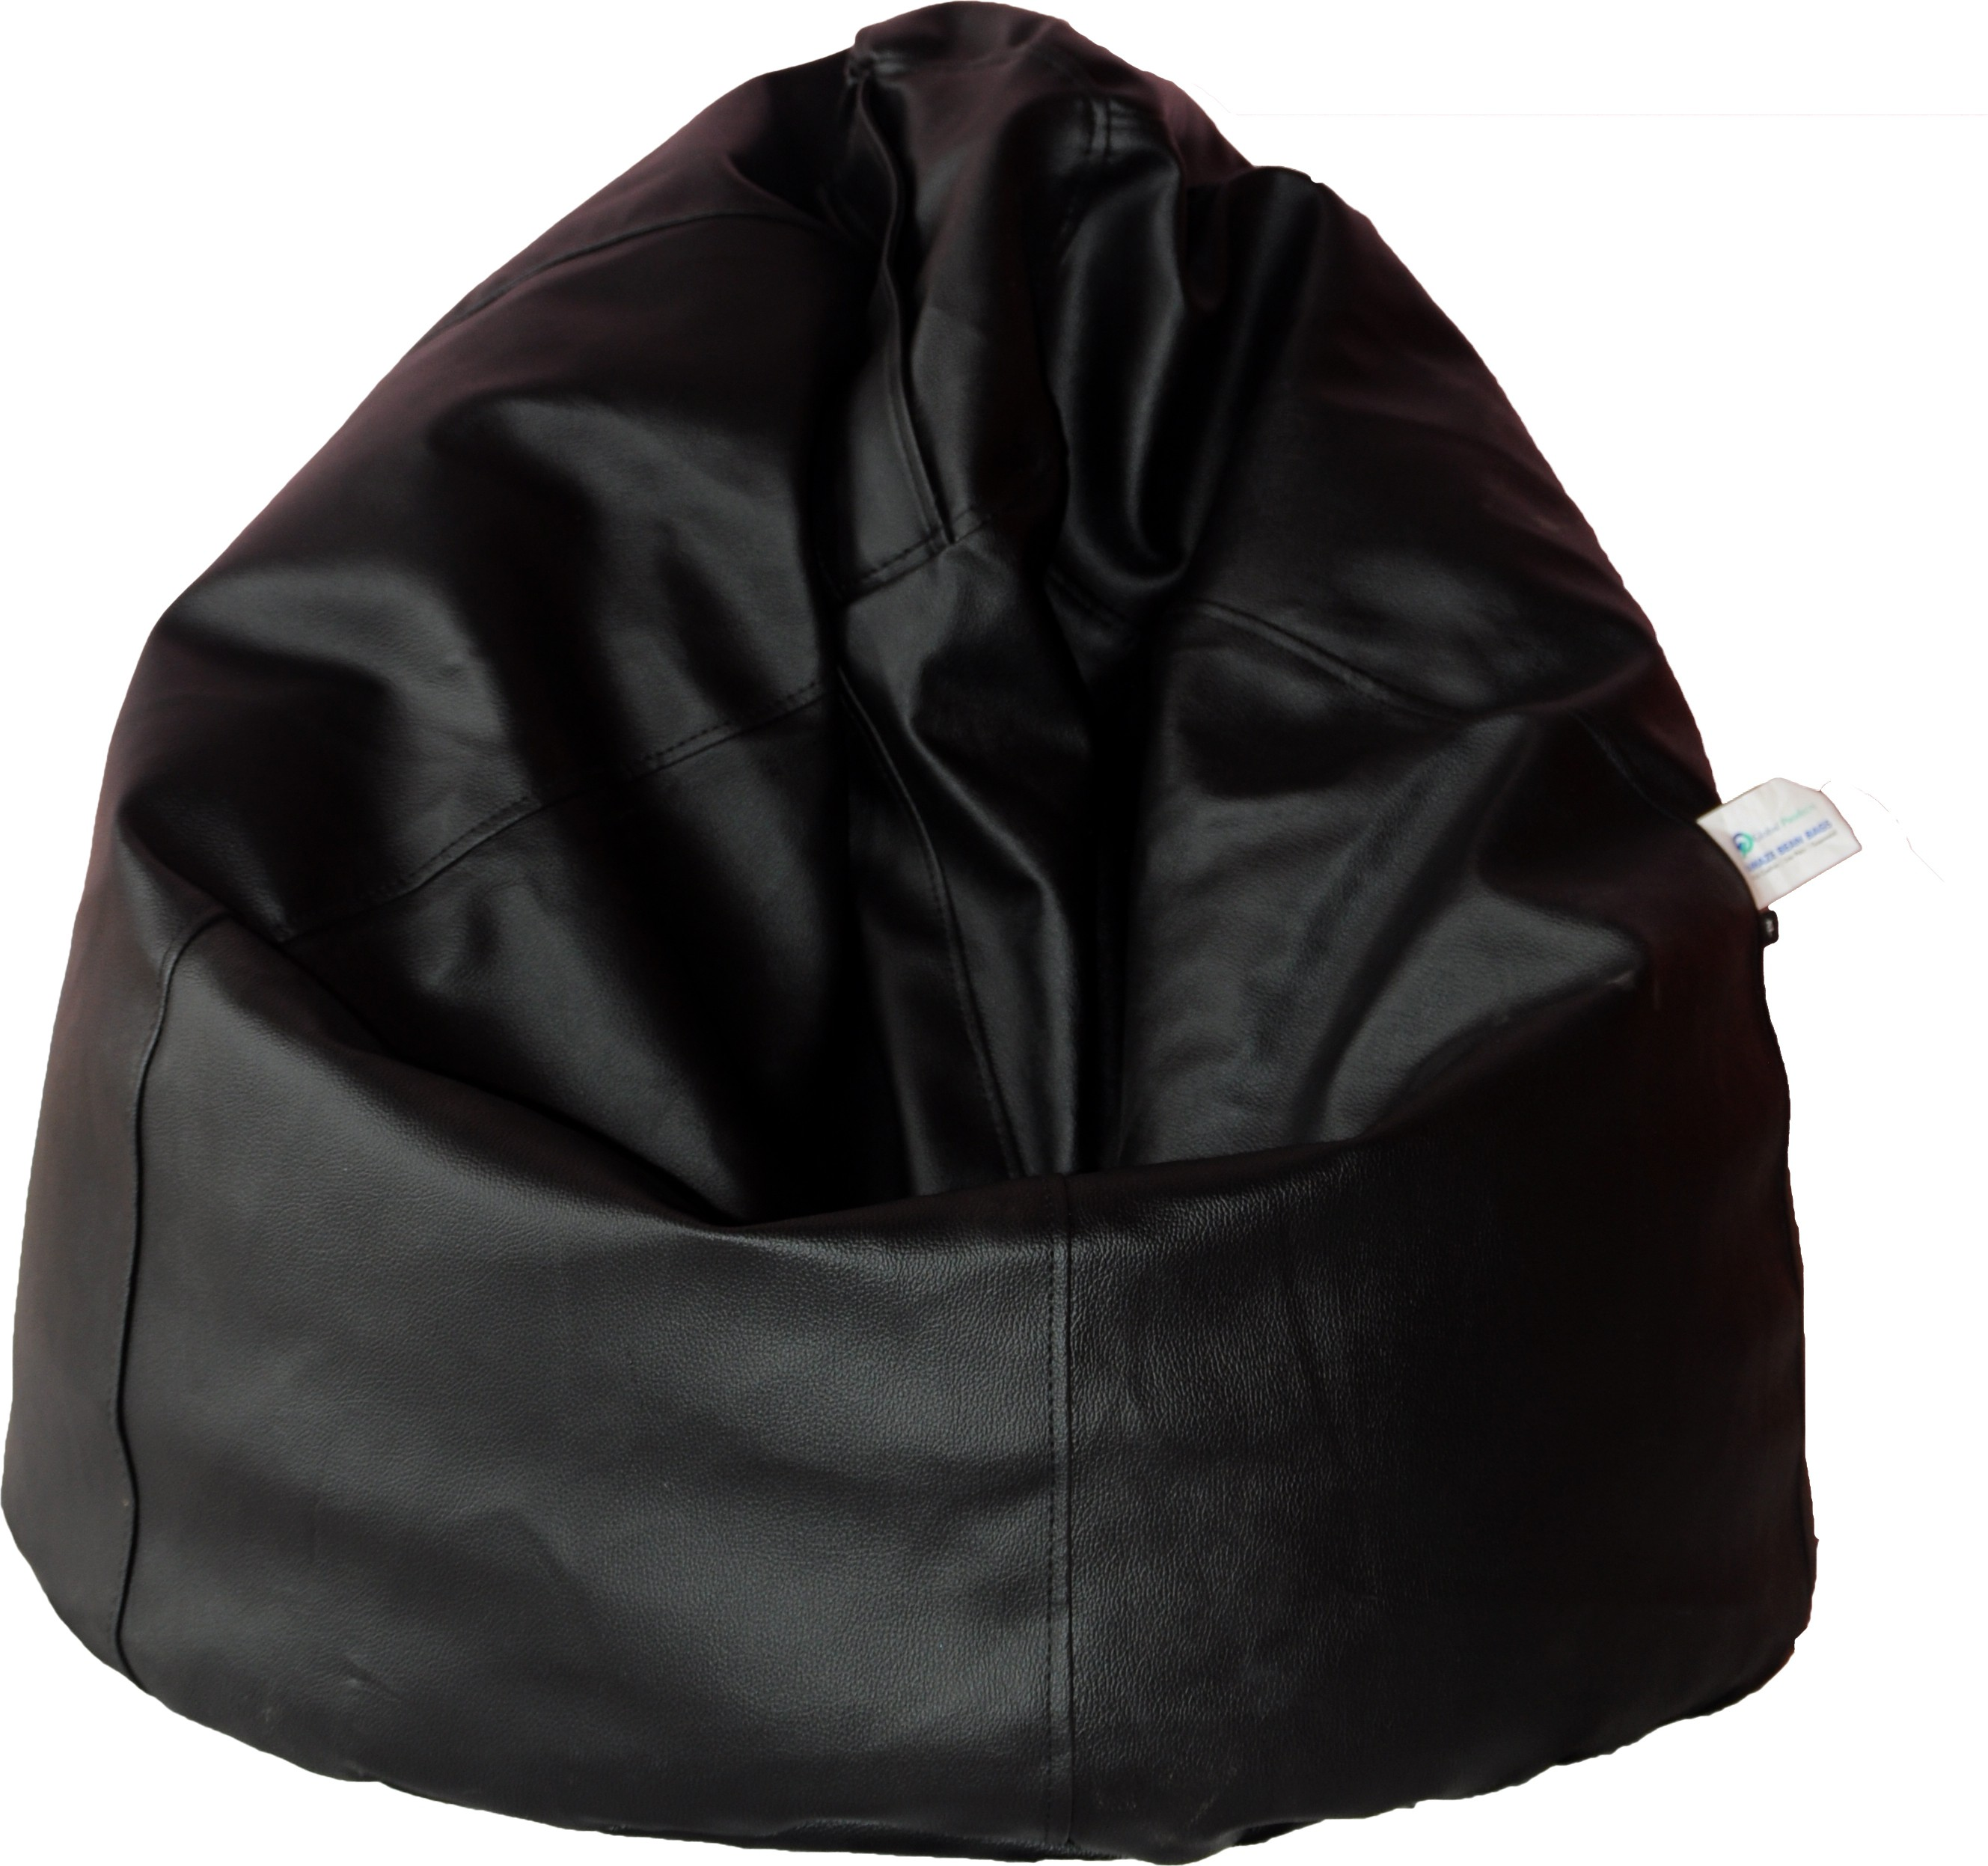 View Amaze XL Bean Bag Cover(Black) Furniture (Amaze)